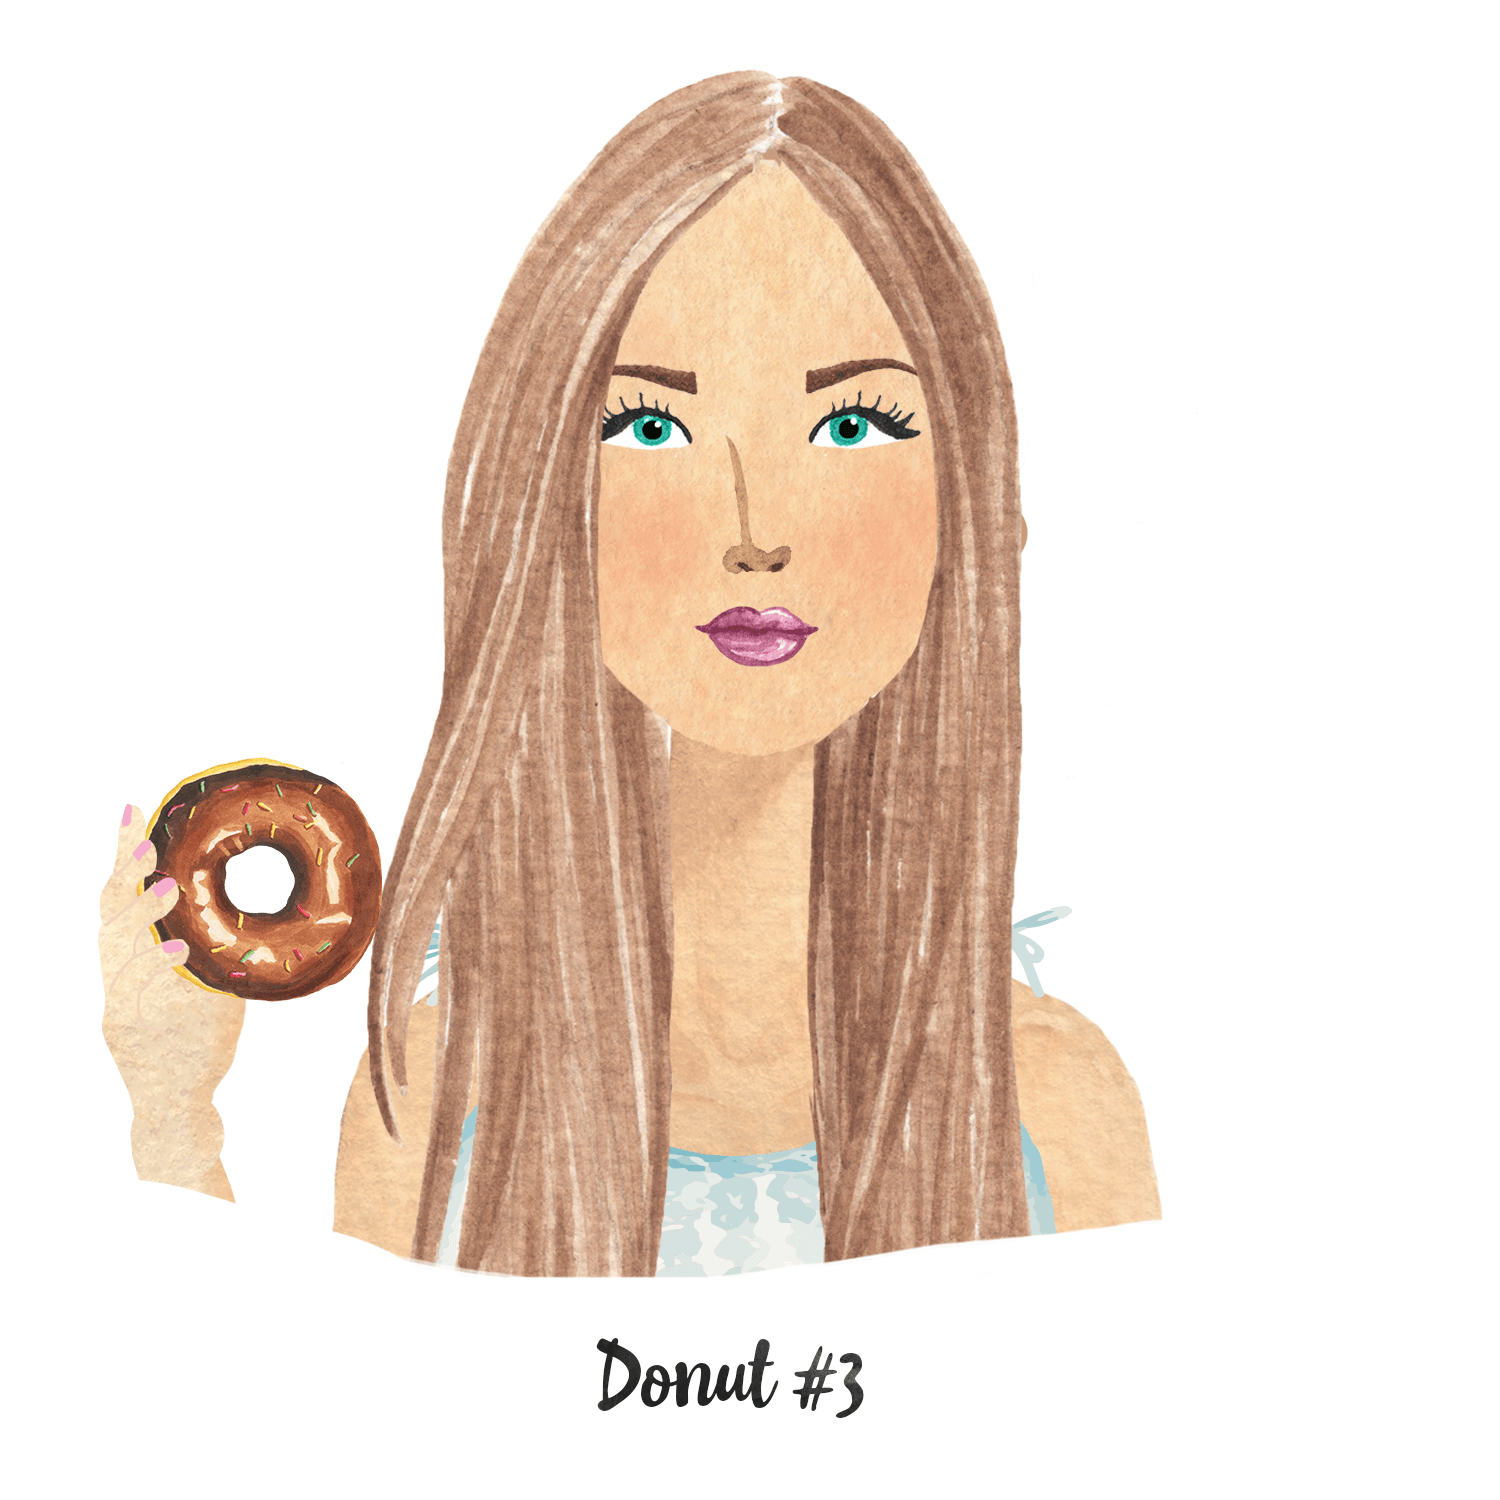 Donut 03.png